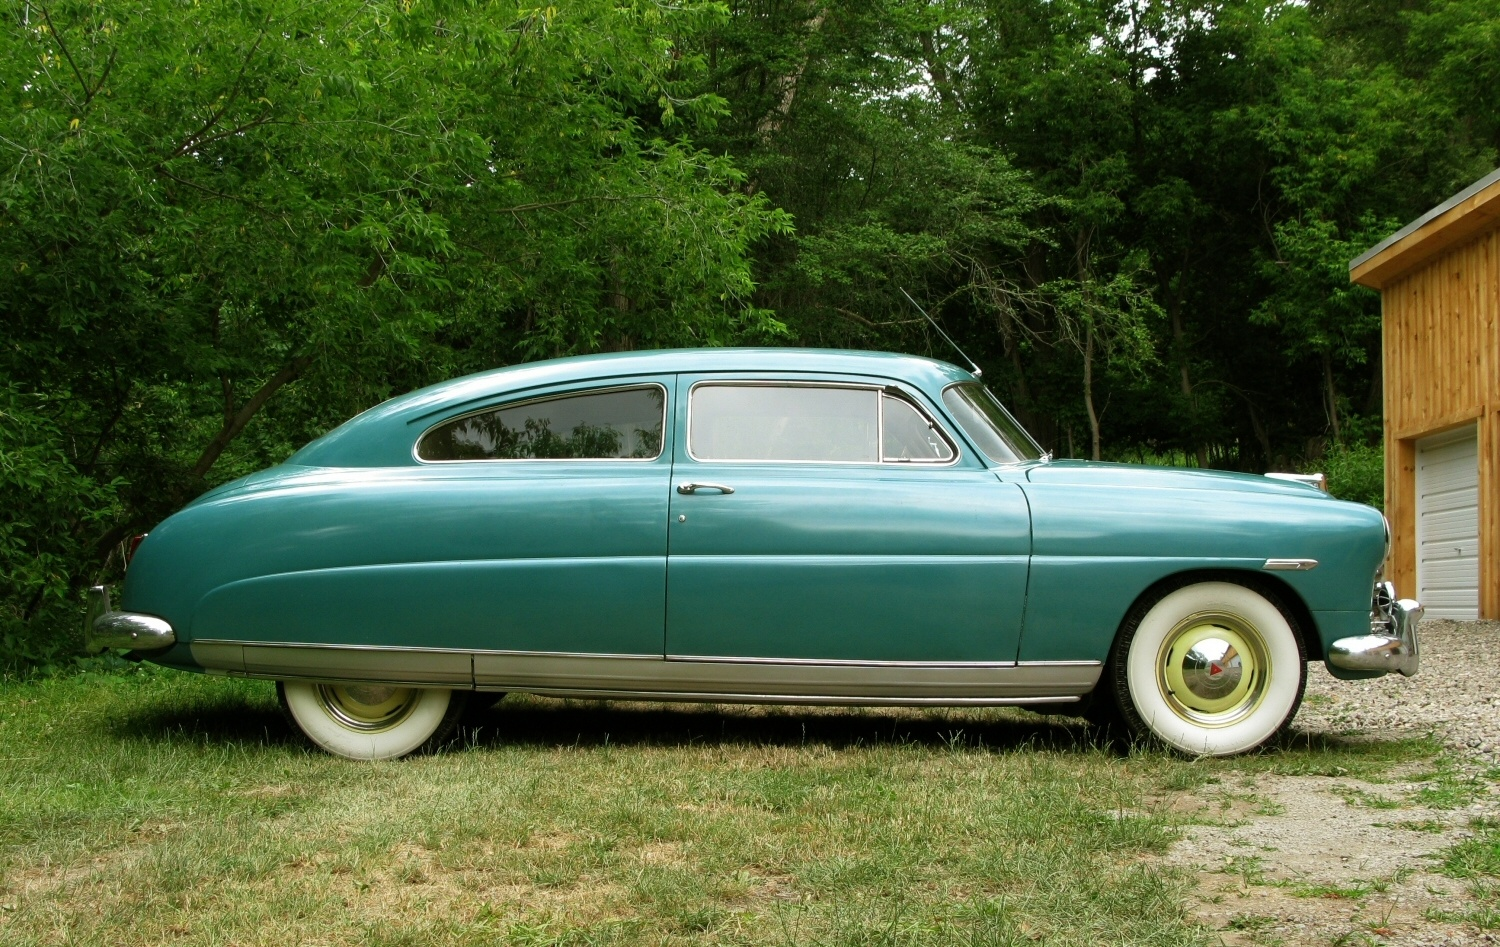 WANTED: NOS radiator for our '50 Pacemaker  — Hudson Essex